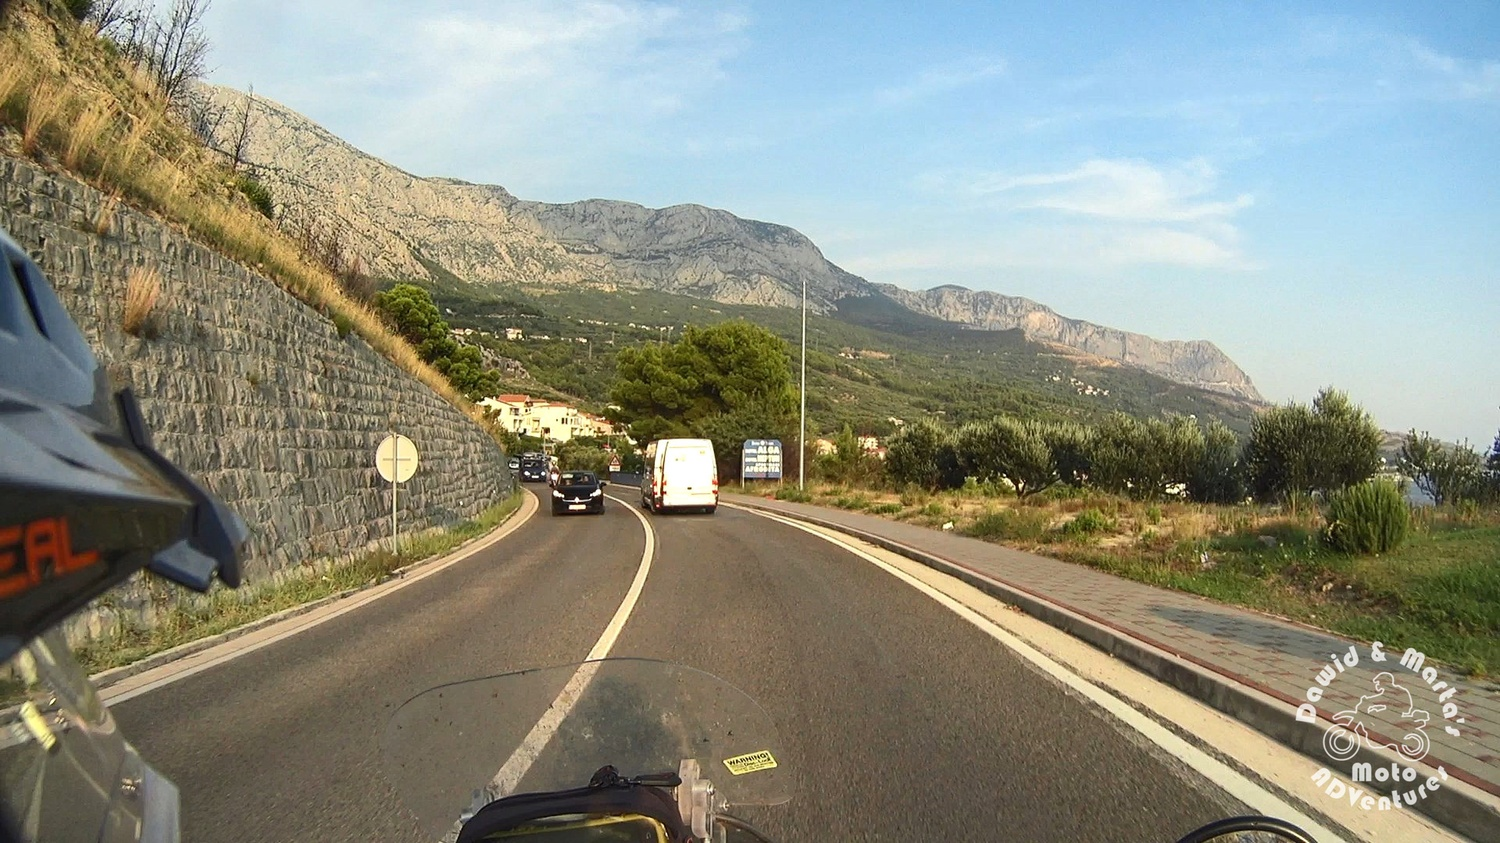 Adriatic Highway between Podgora and Makarska